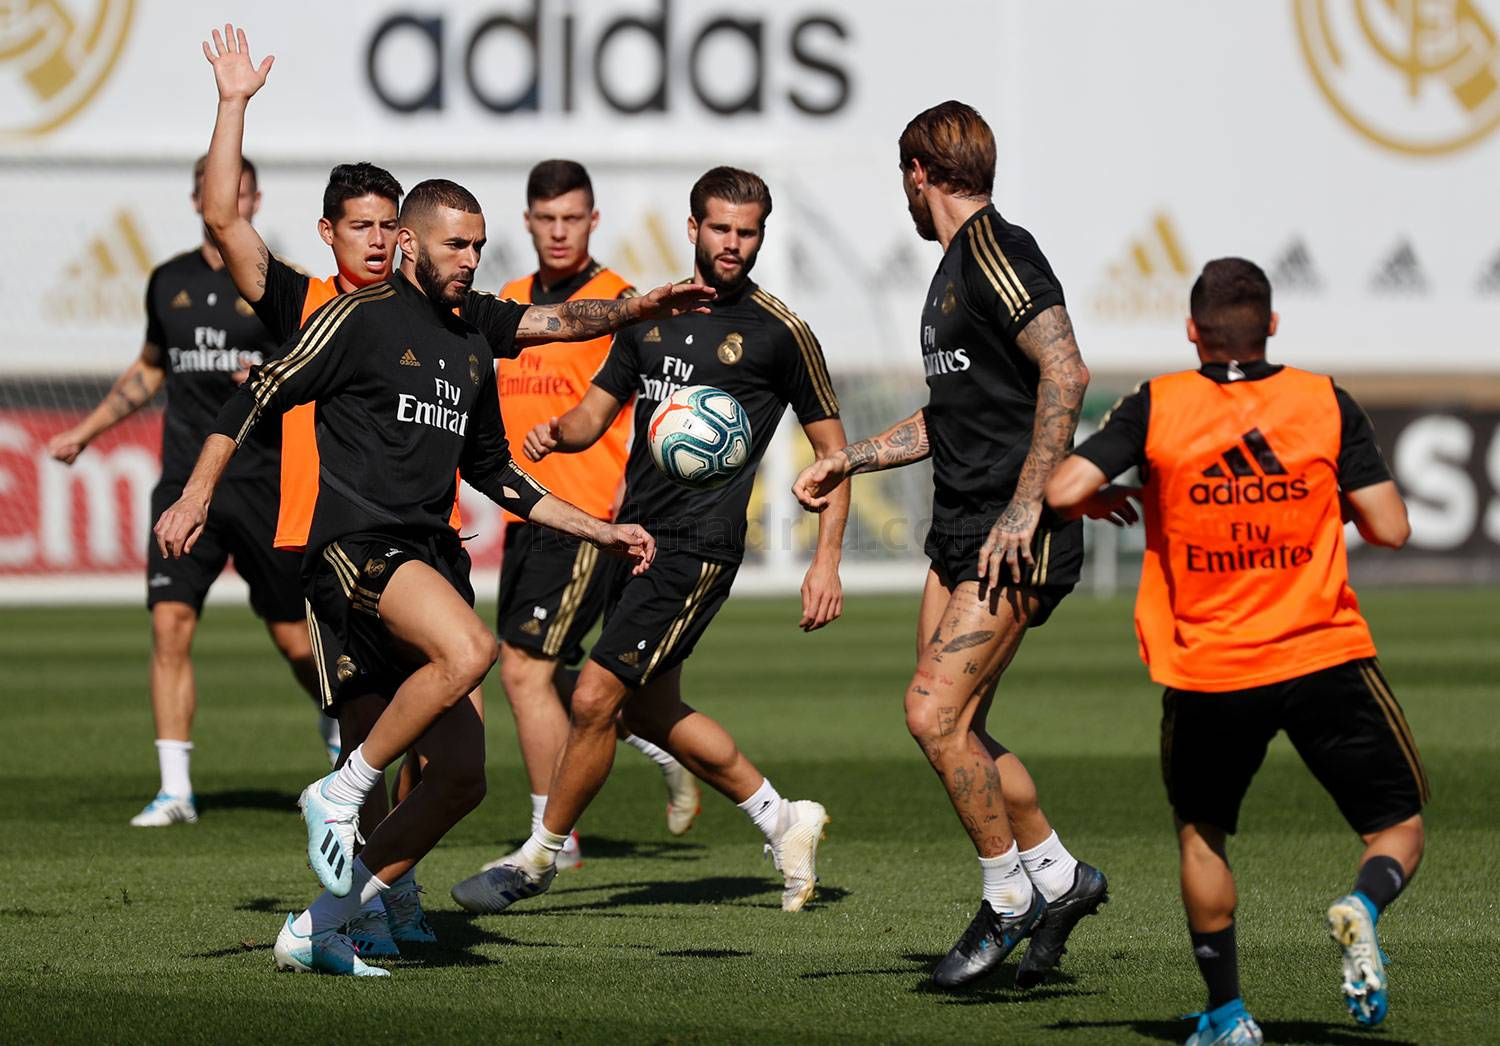 Real Madrid - Entrenamiento del Real Madrid  - 24-09-2019